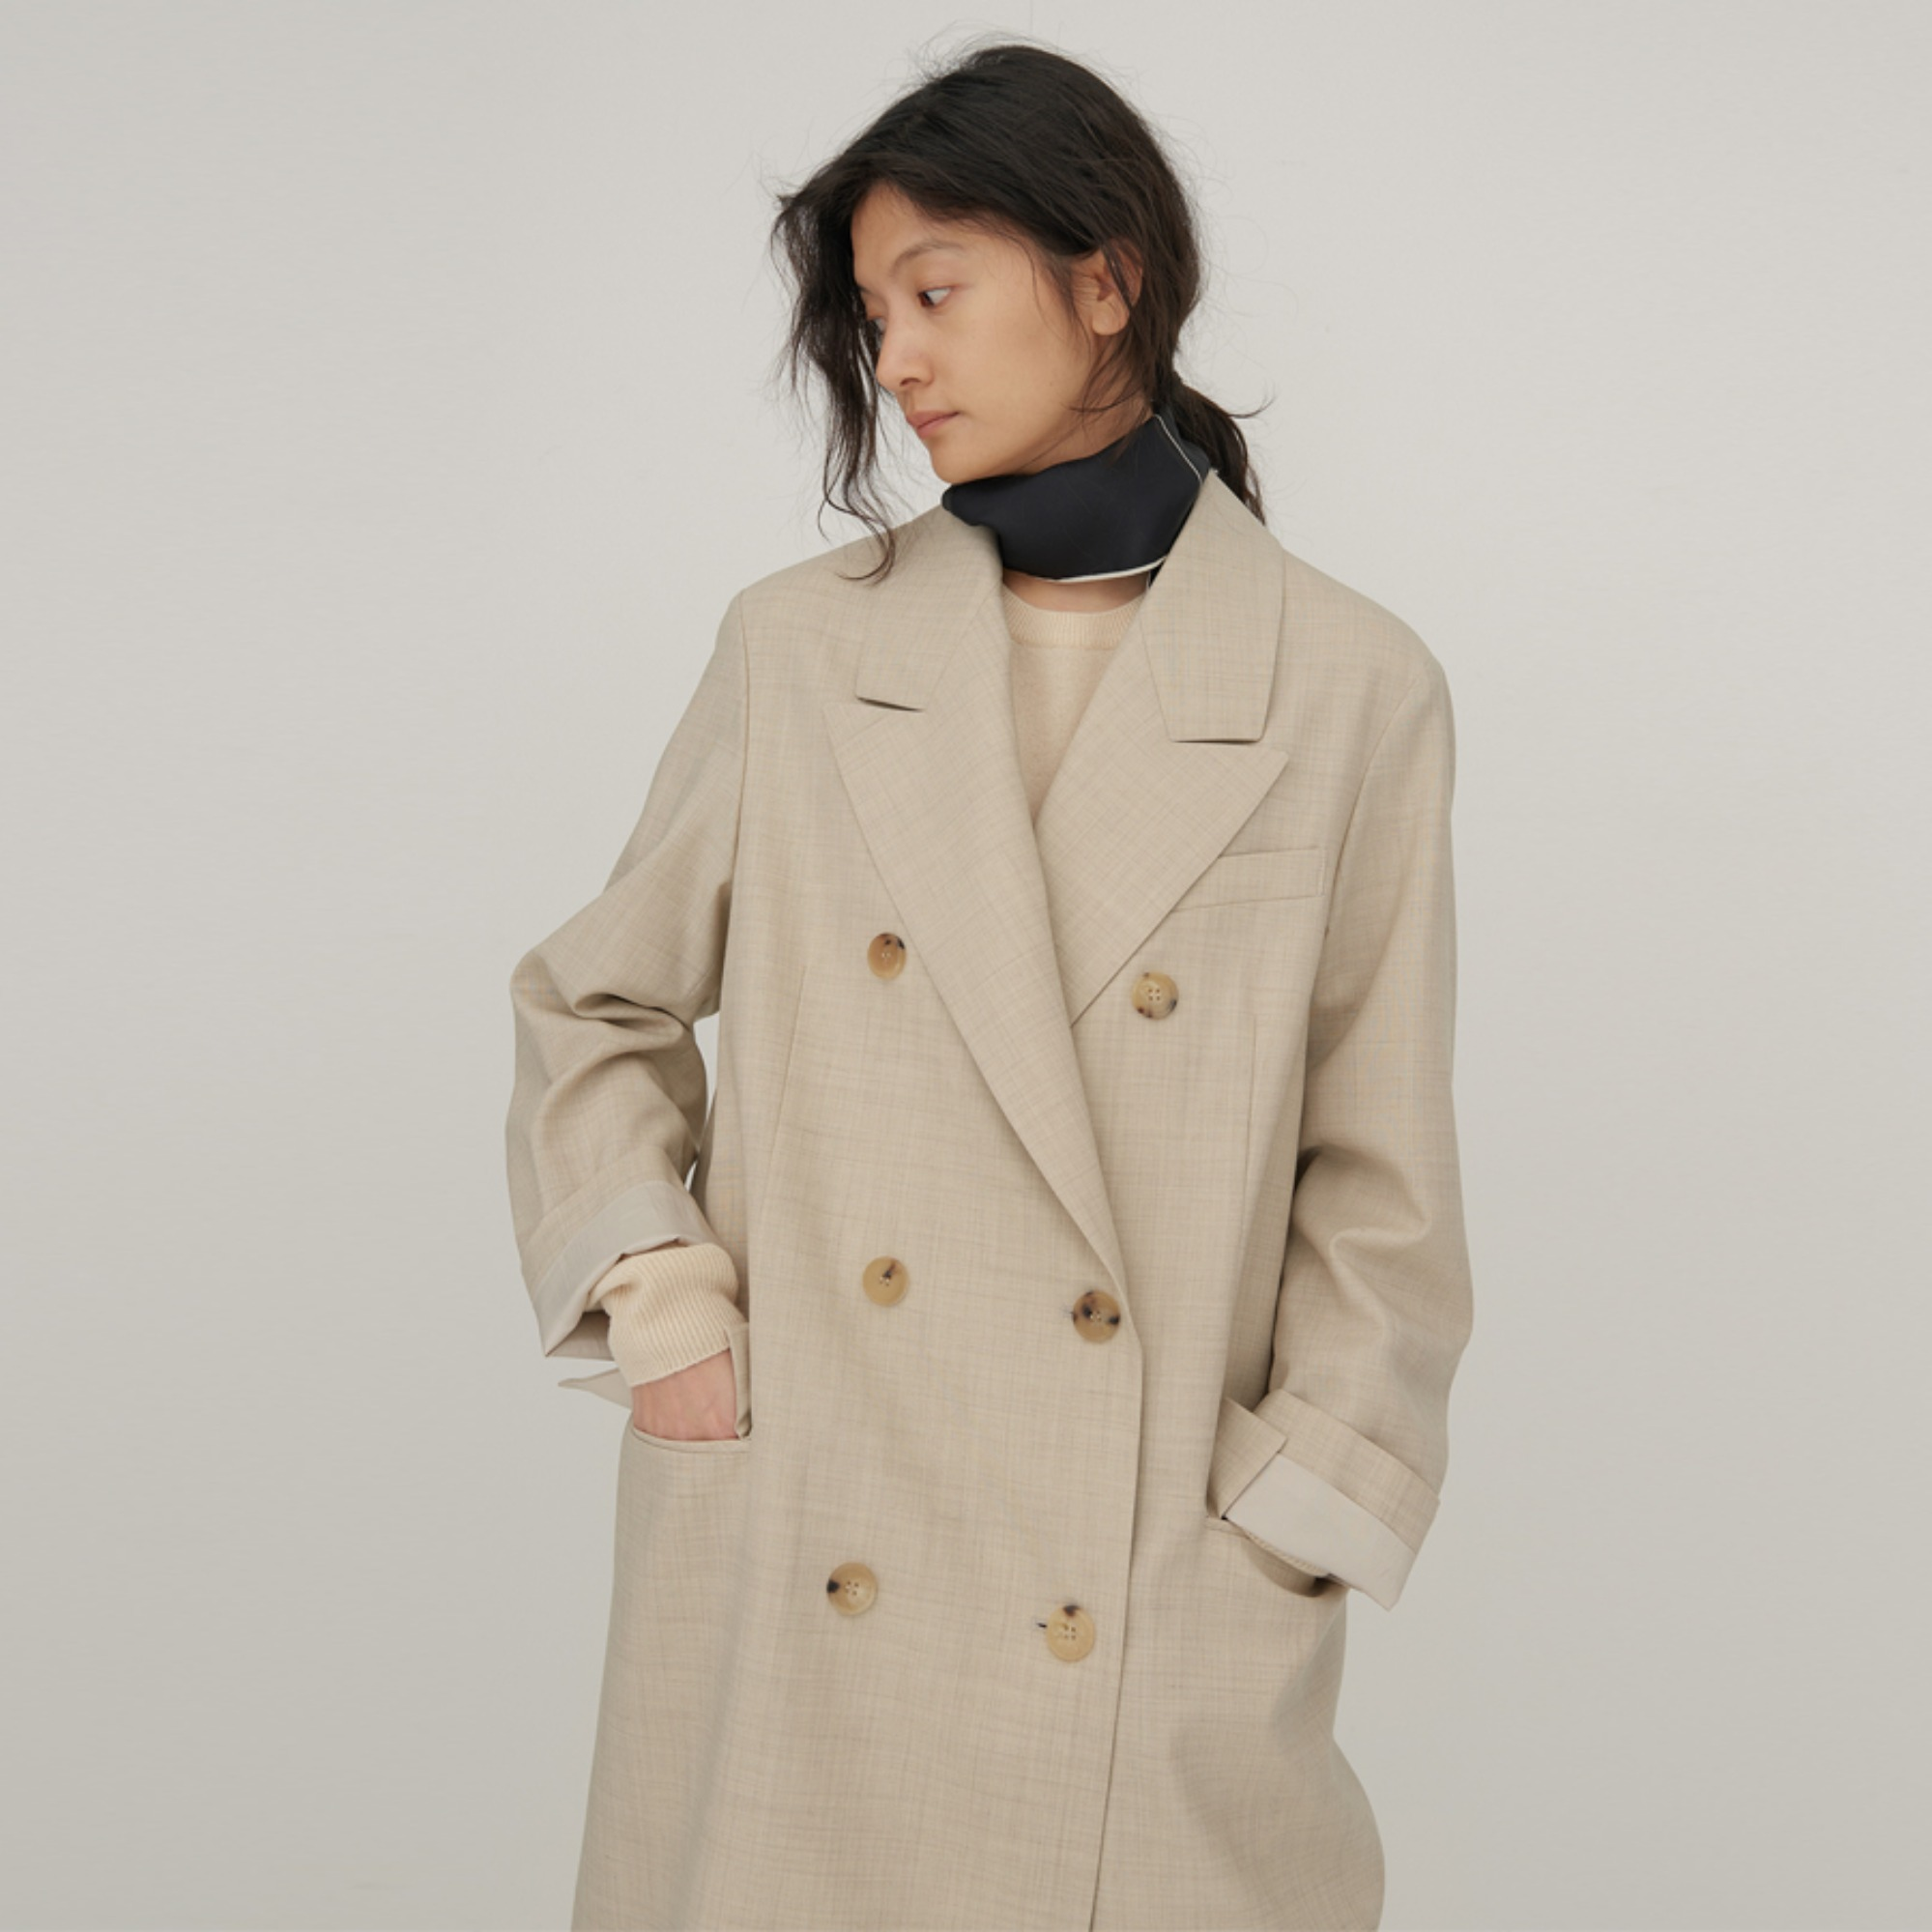 Jemma double long jacket